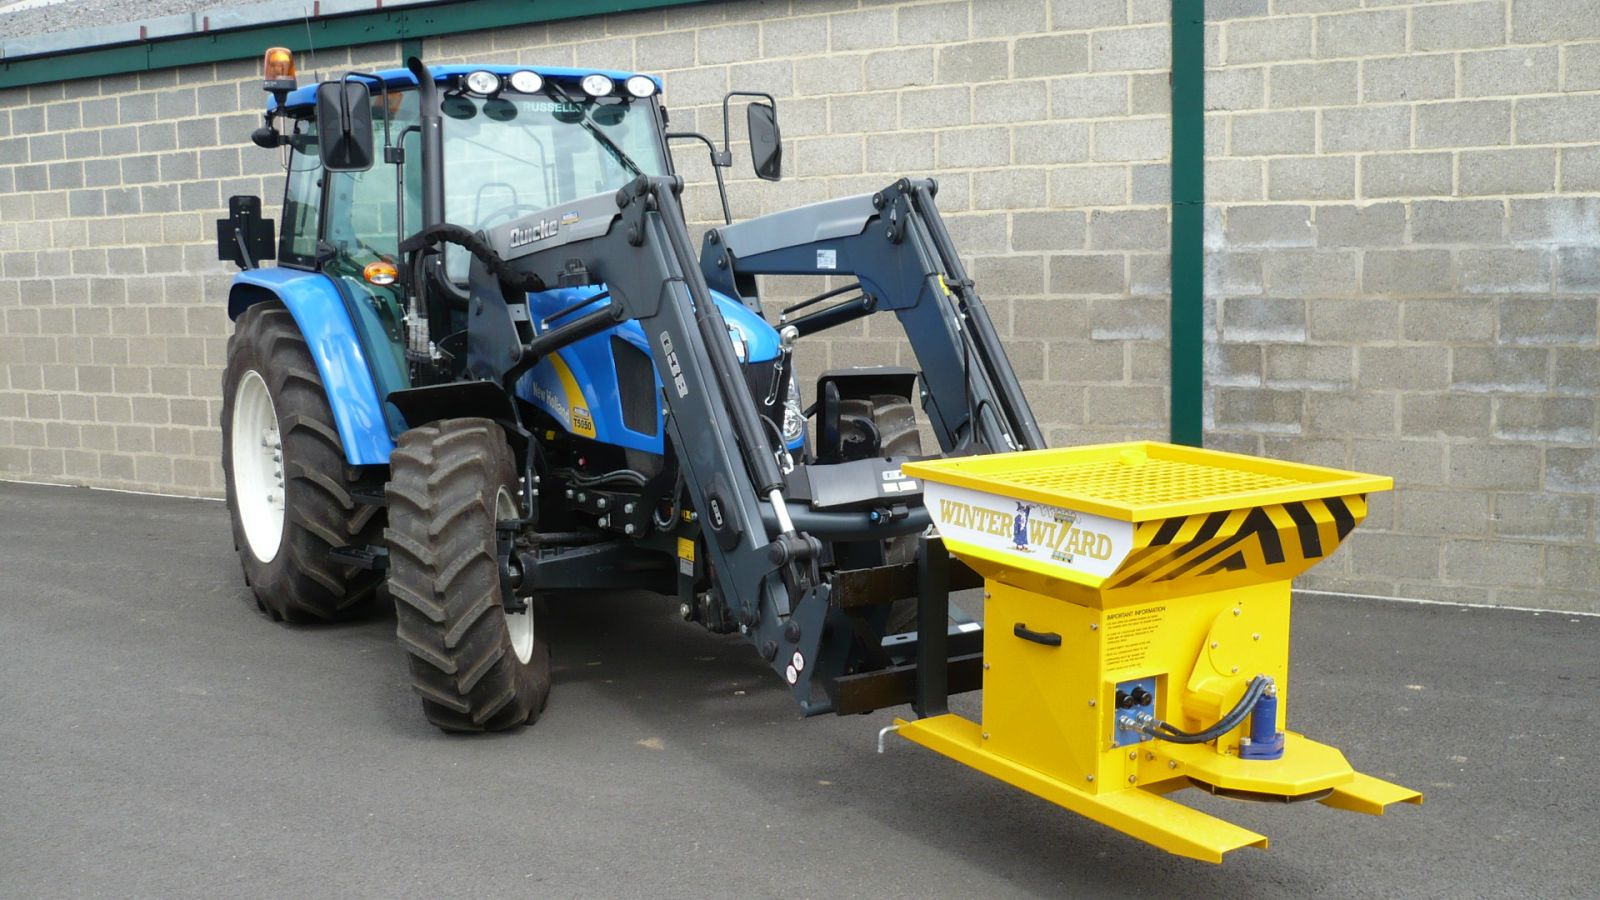 The Winter Wizard salt spreader was specifically designed to be forklift-tine mountable